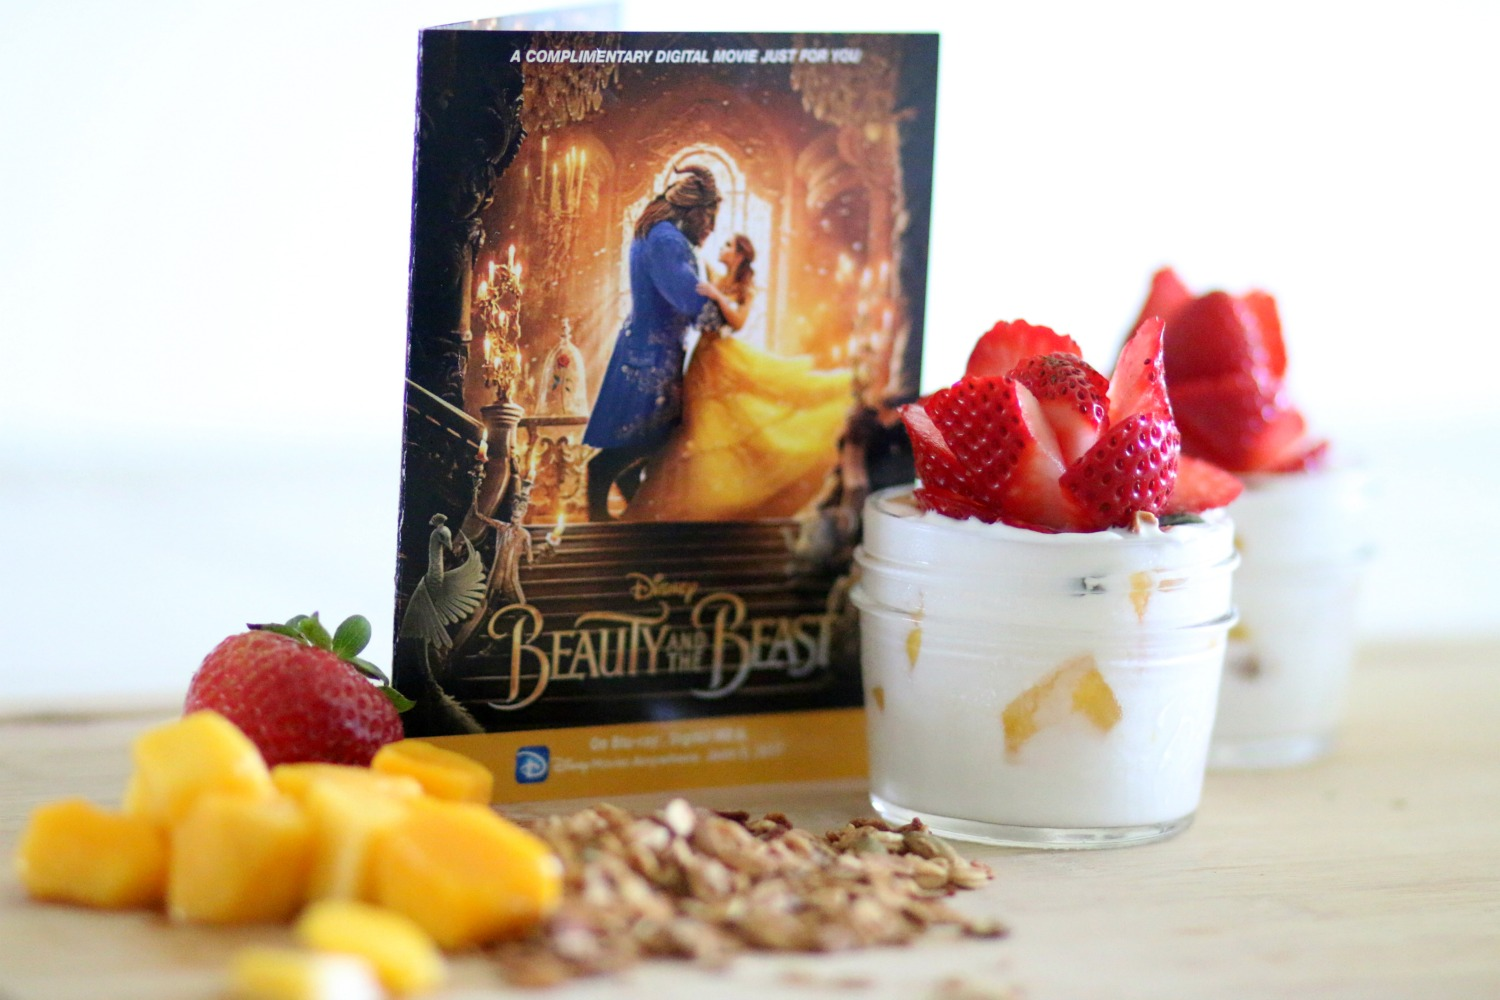 Beauty and the Beast recipe.